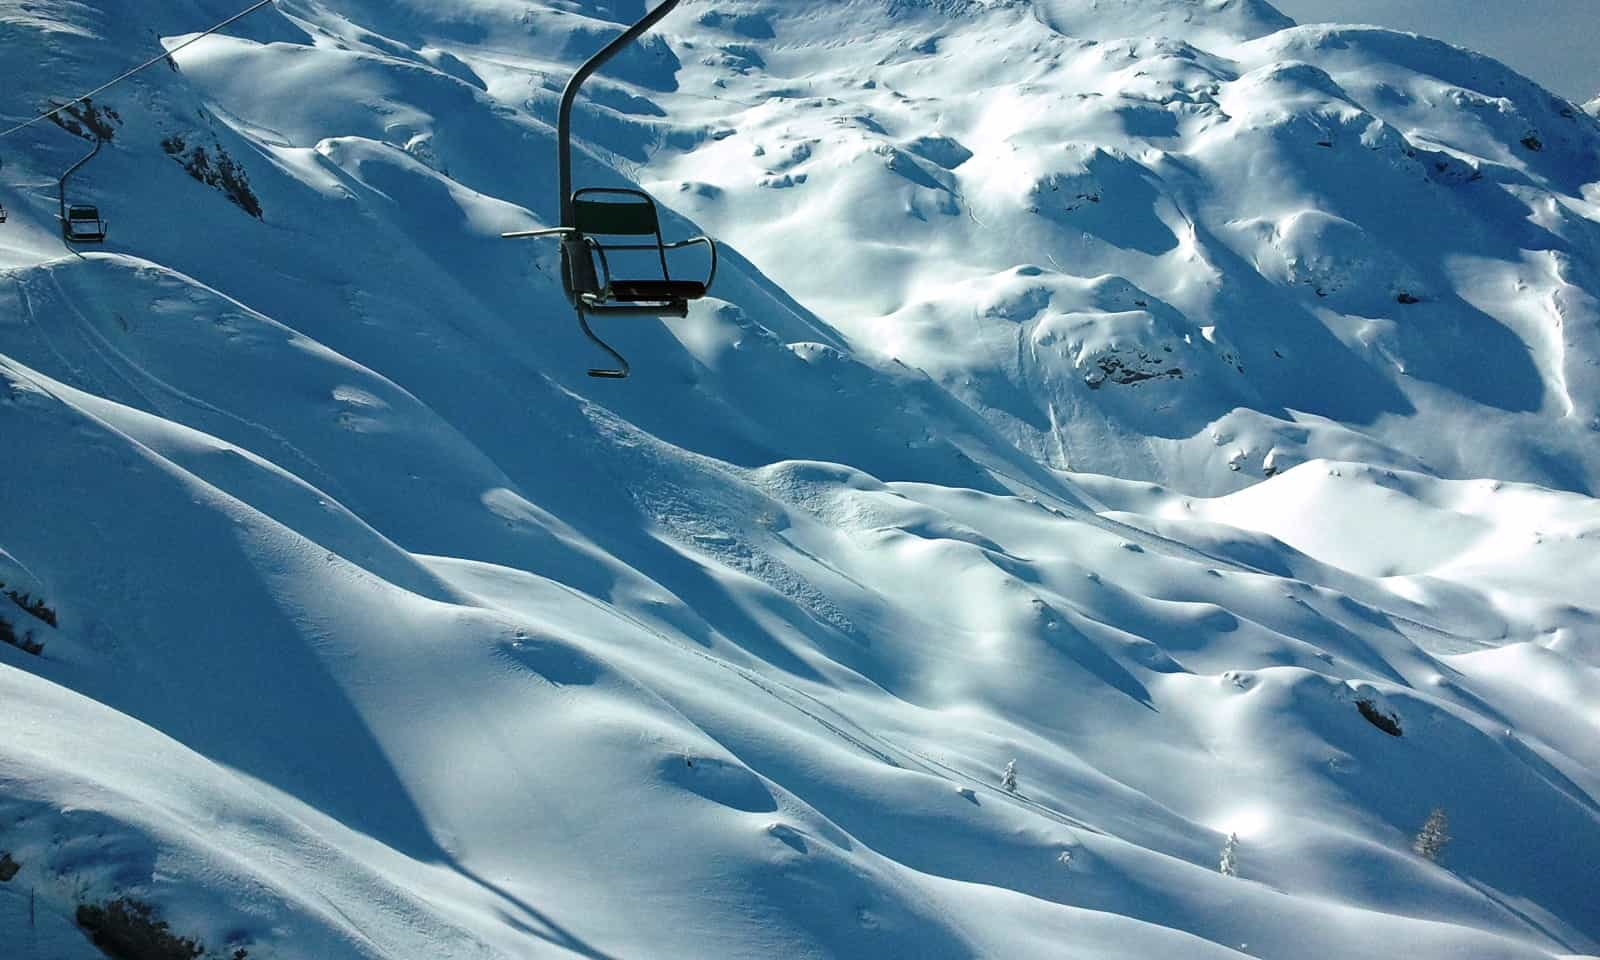 How to snowboard? First you need snow...